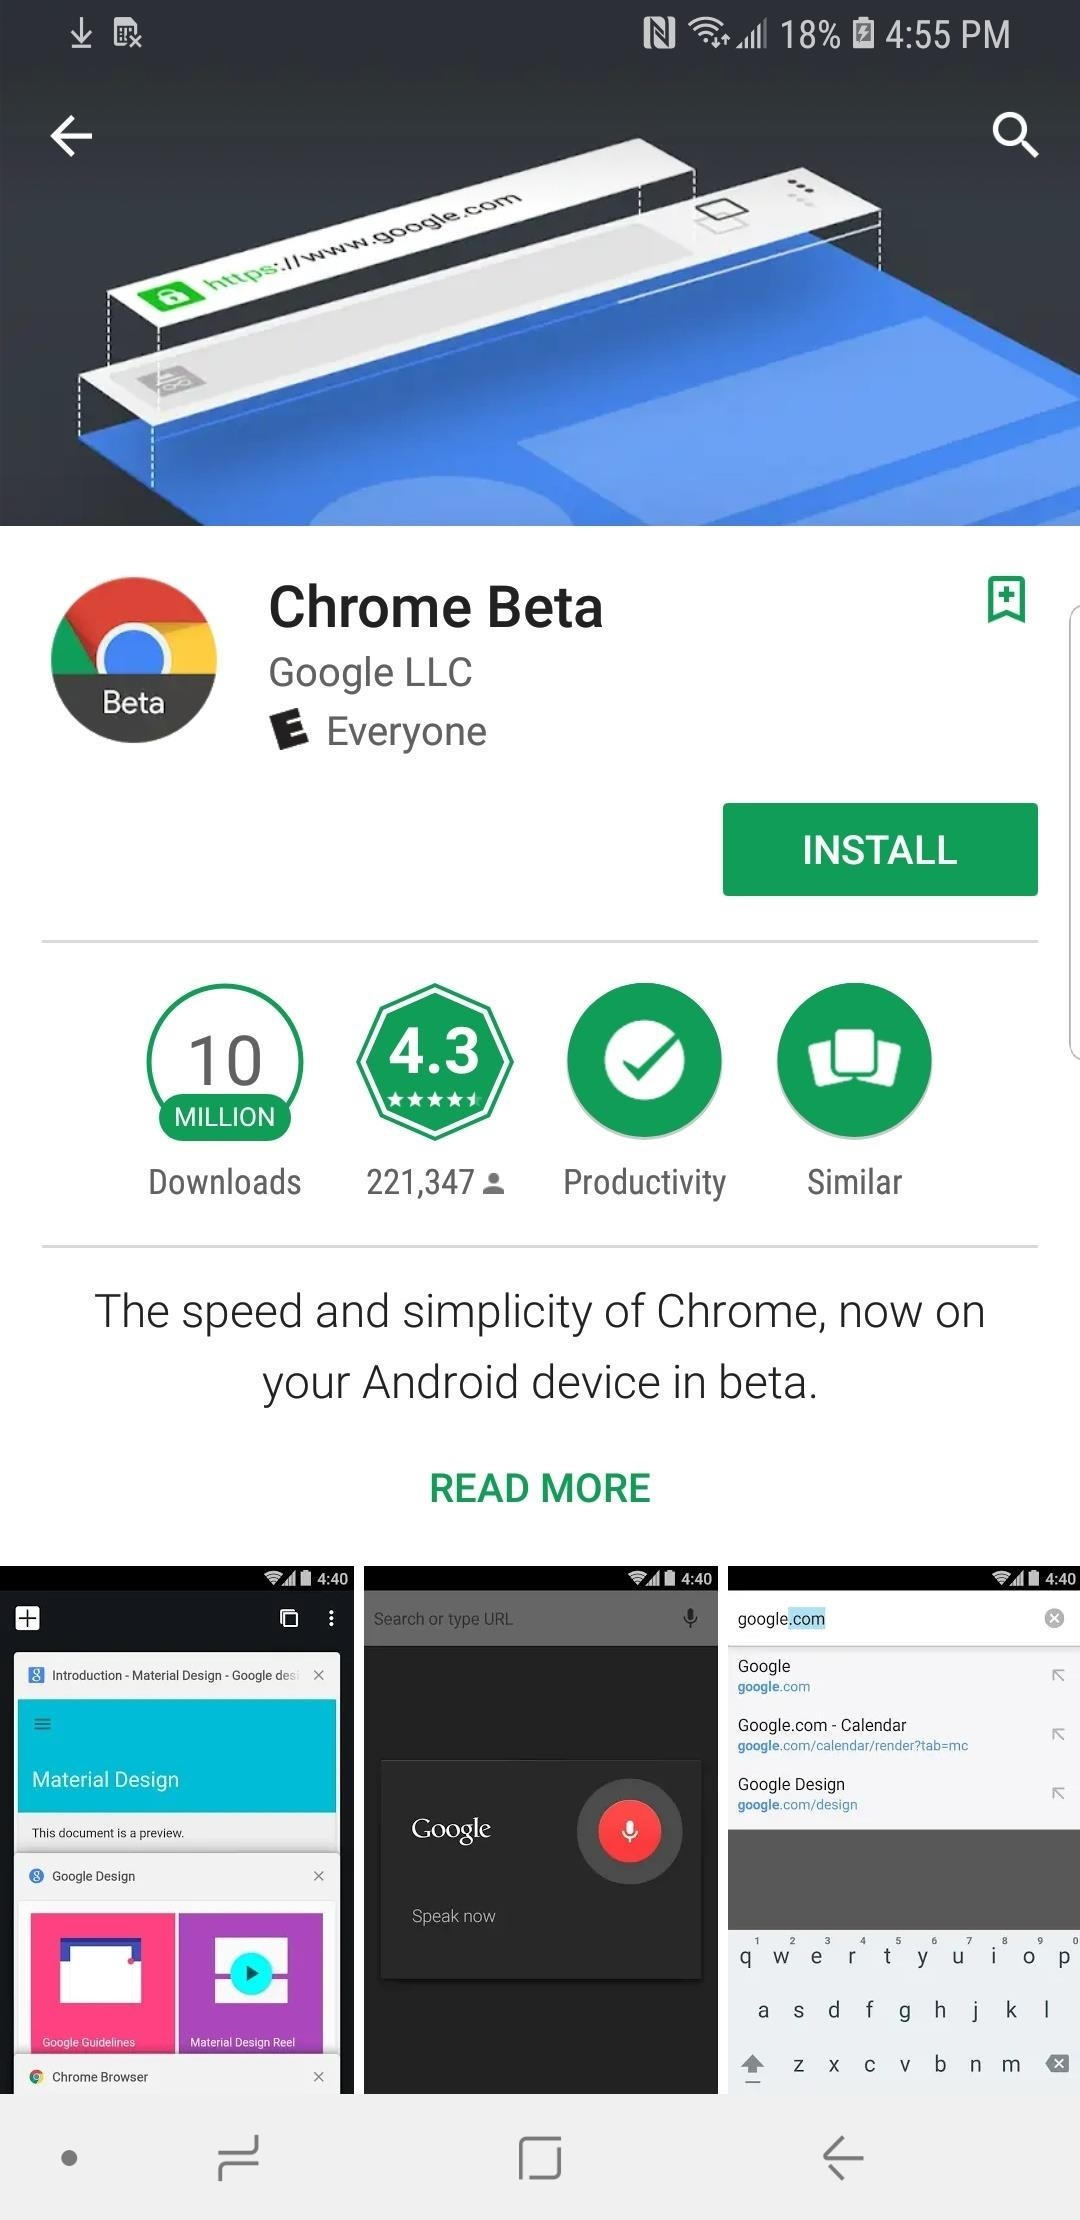 Google Chrome 101: How to Install the Beta Browser on iPhone & Android ...